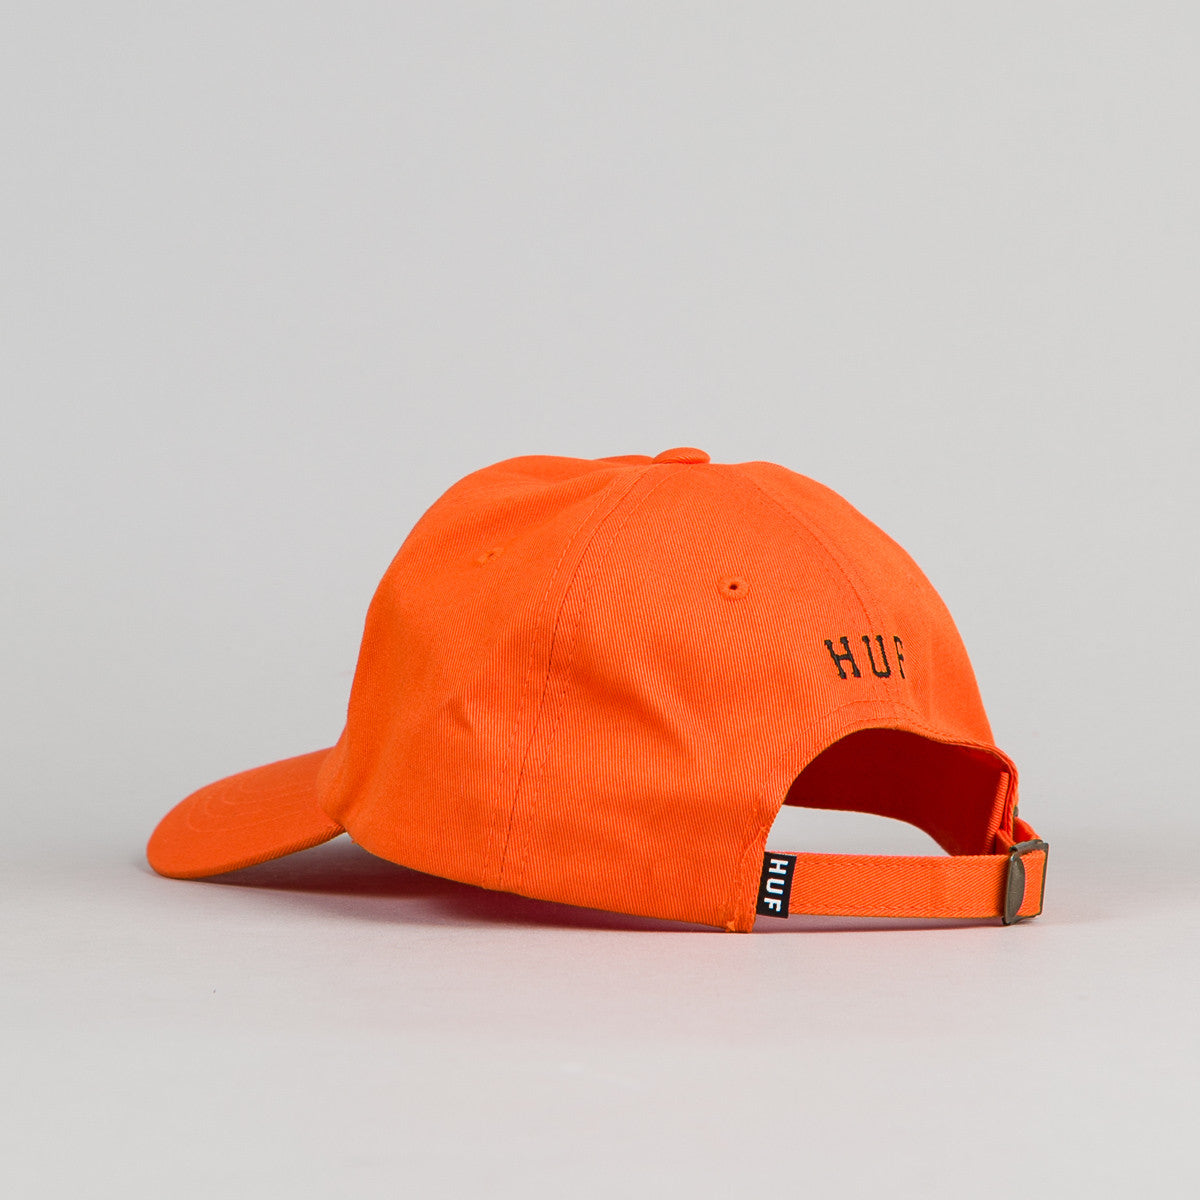 HUF Classic H Cap - Orange / Black